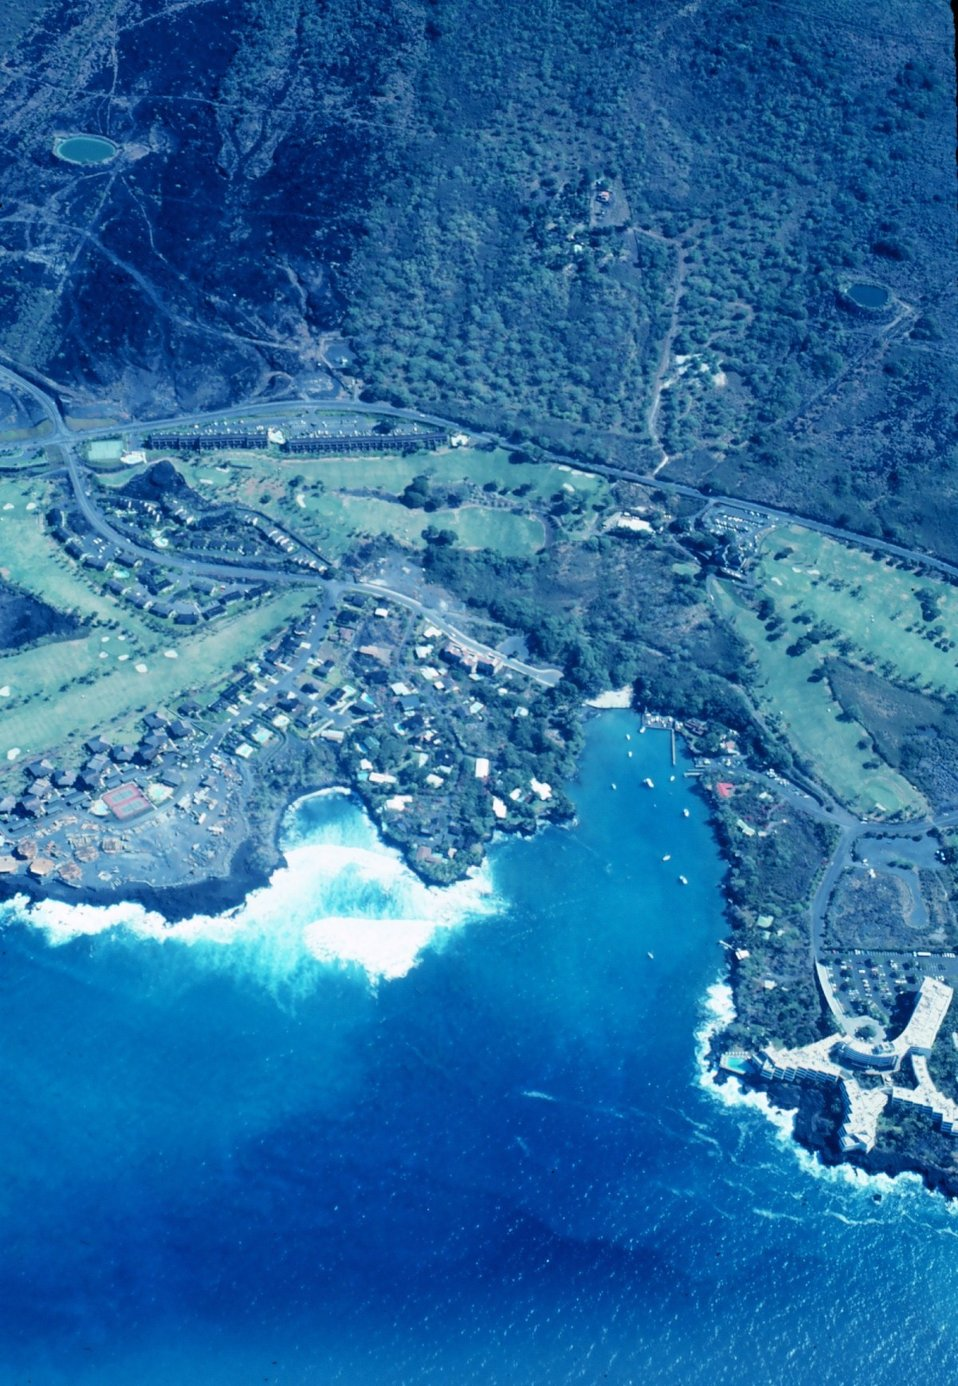 Flying over the Kona Coast